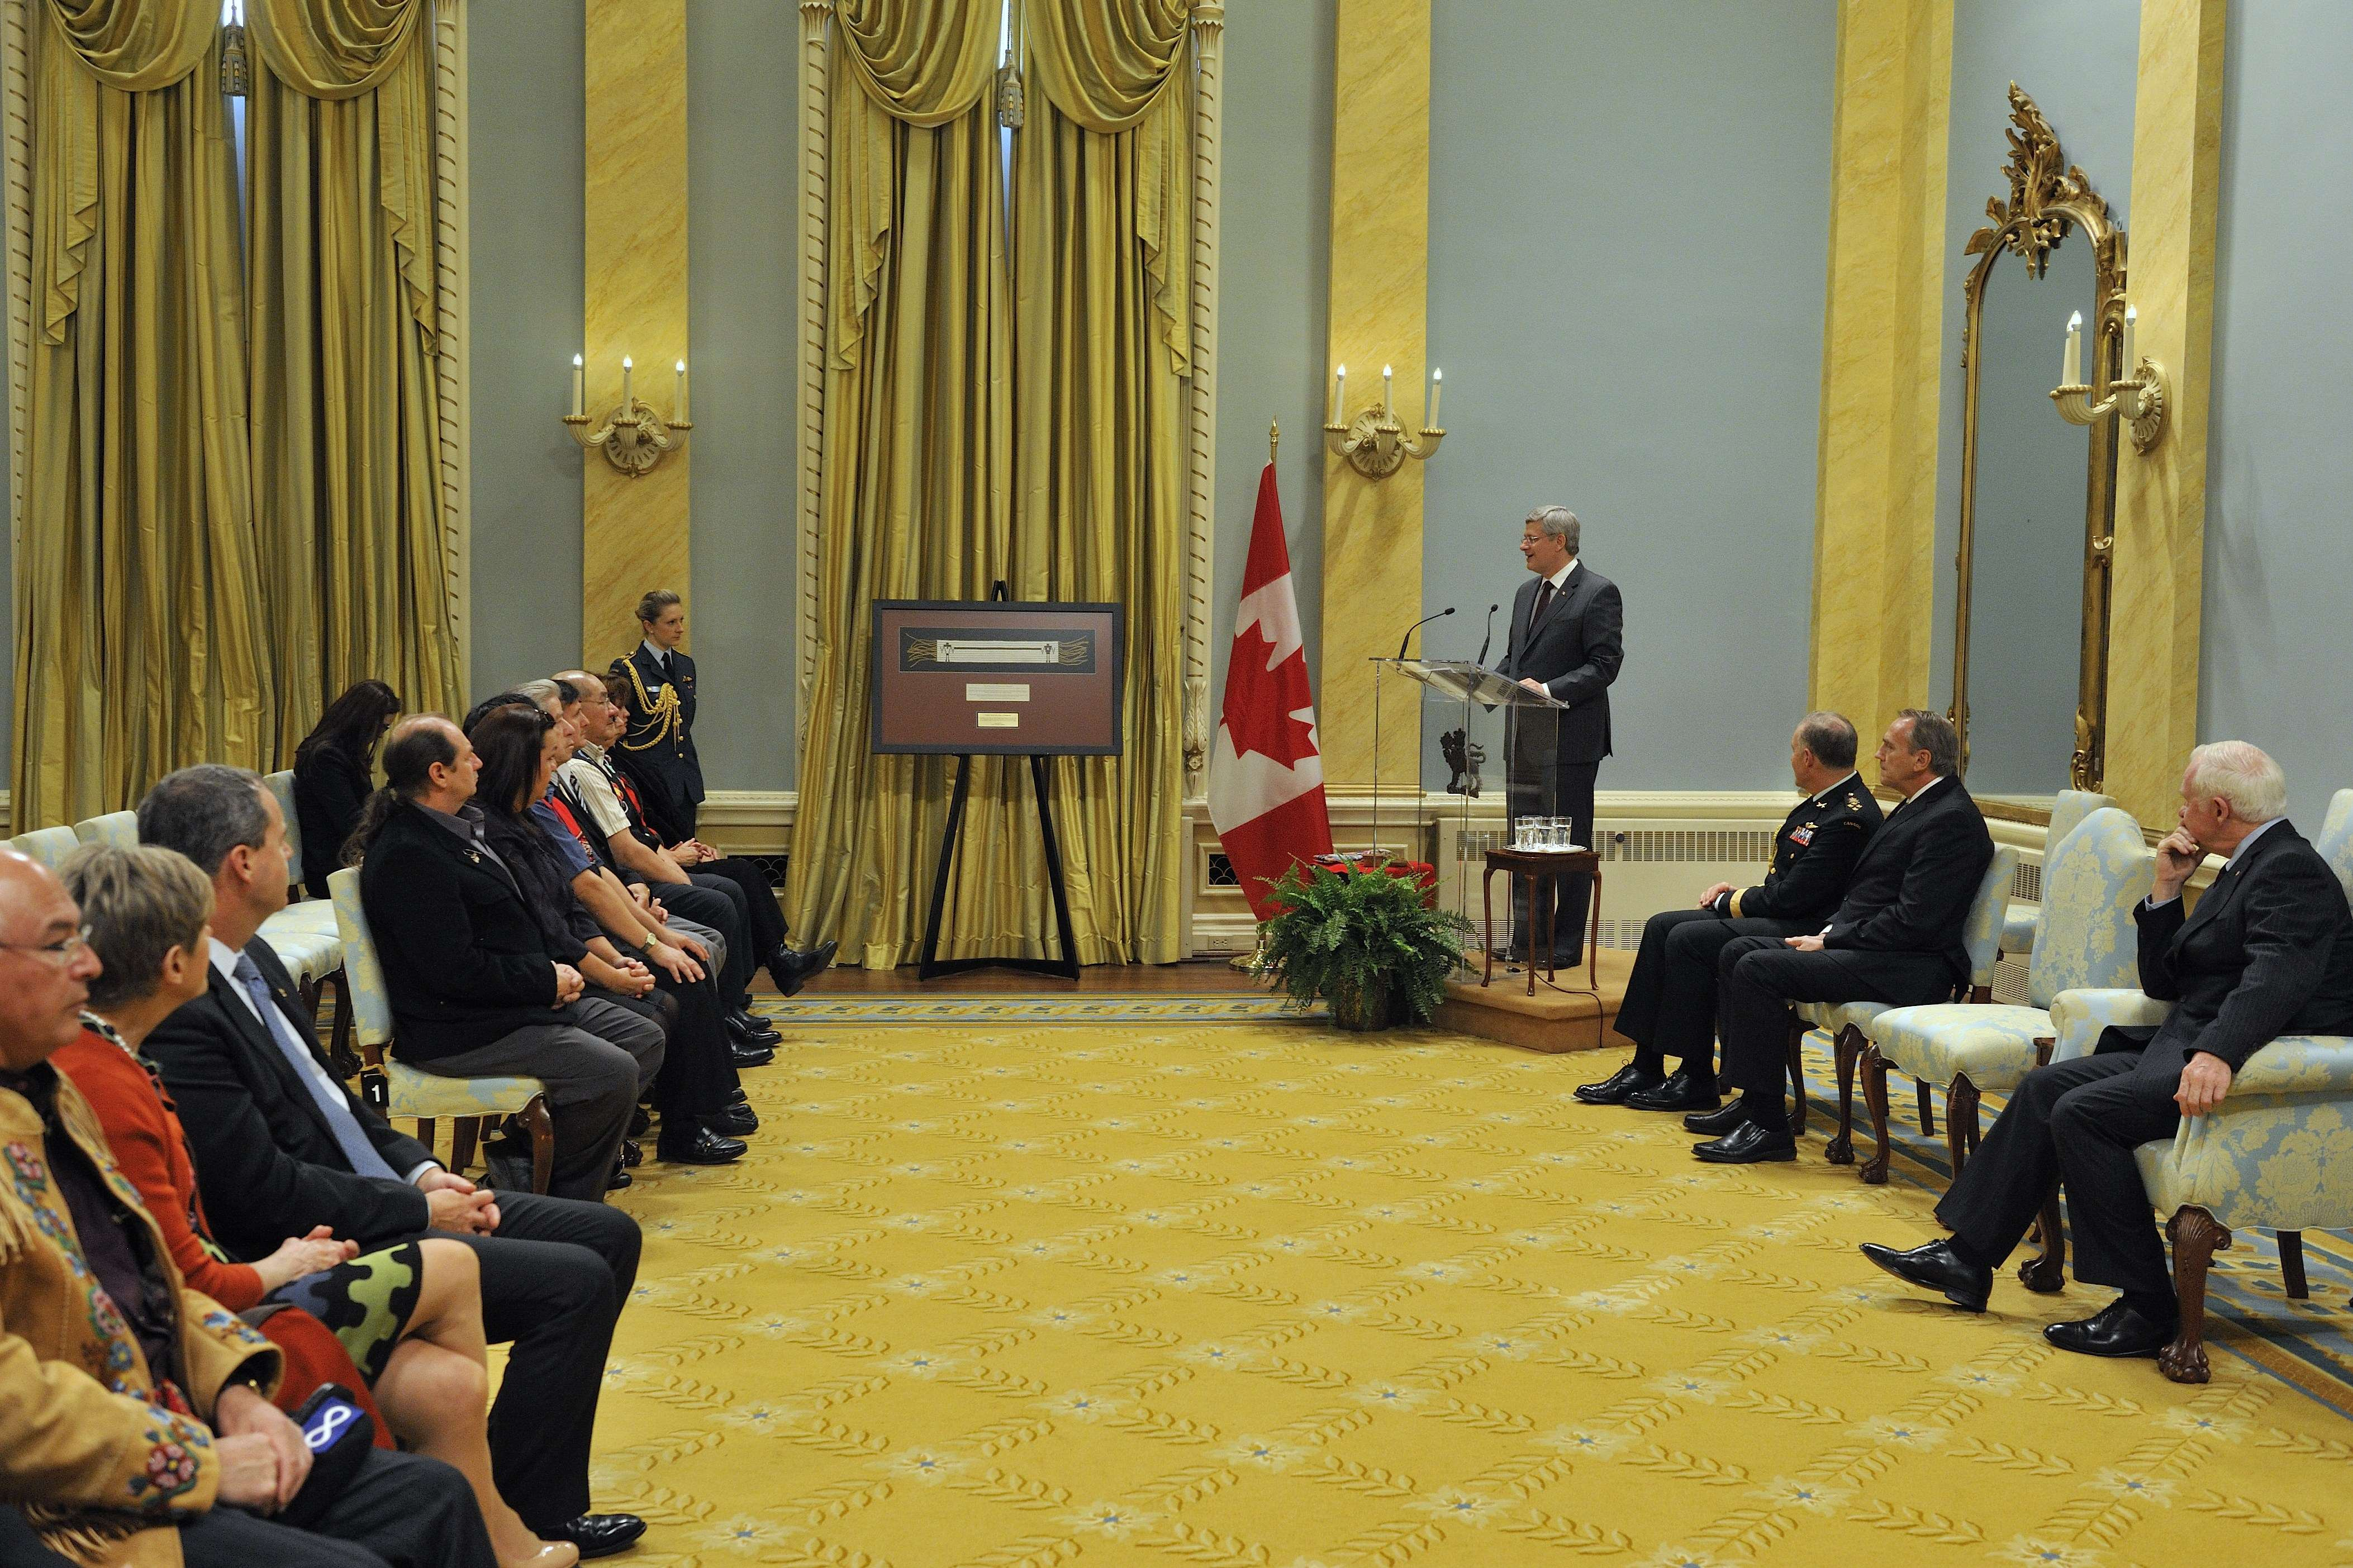 The Right Honourable Stephen Harper also delivered a speech on the occasion.